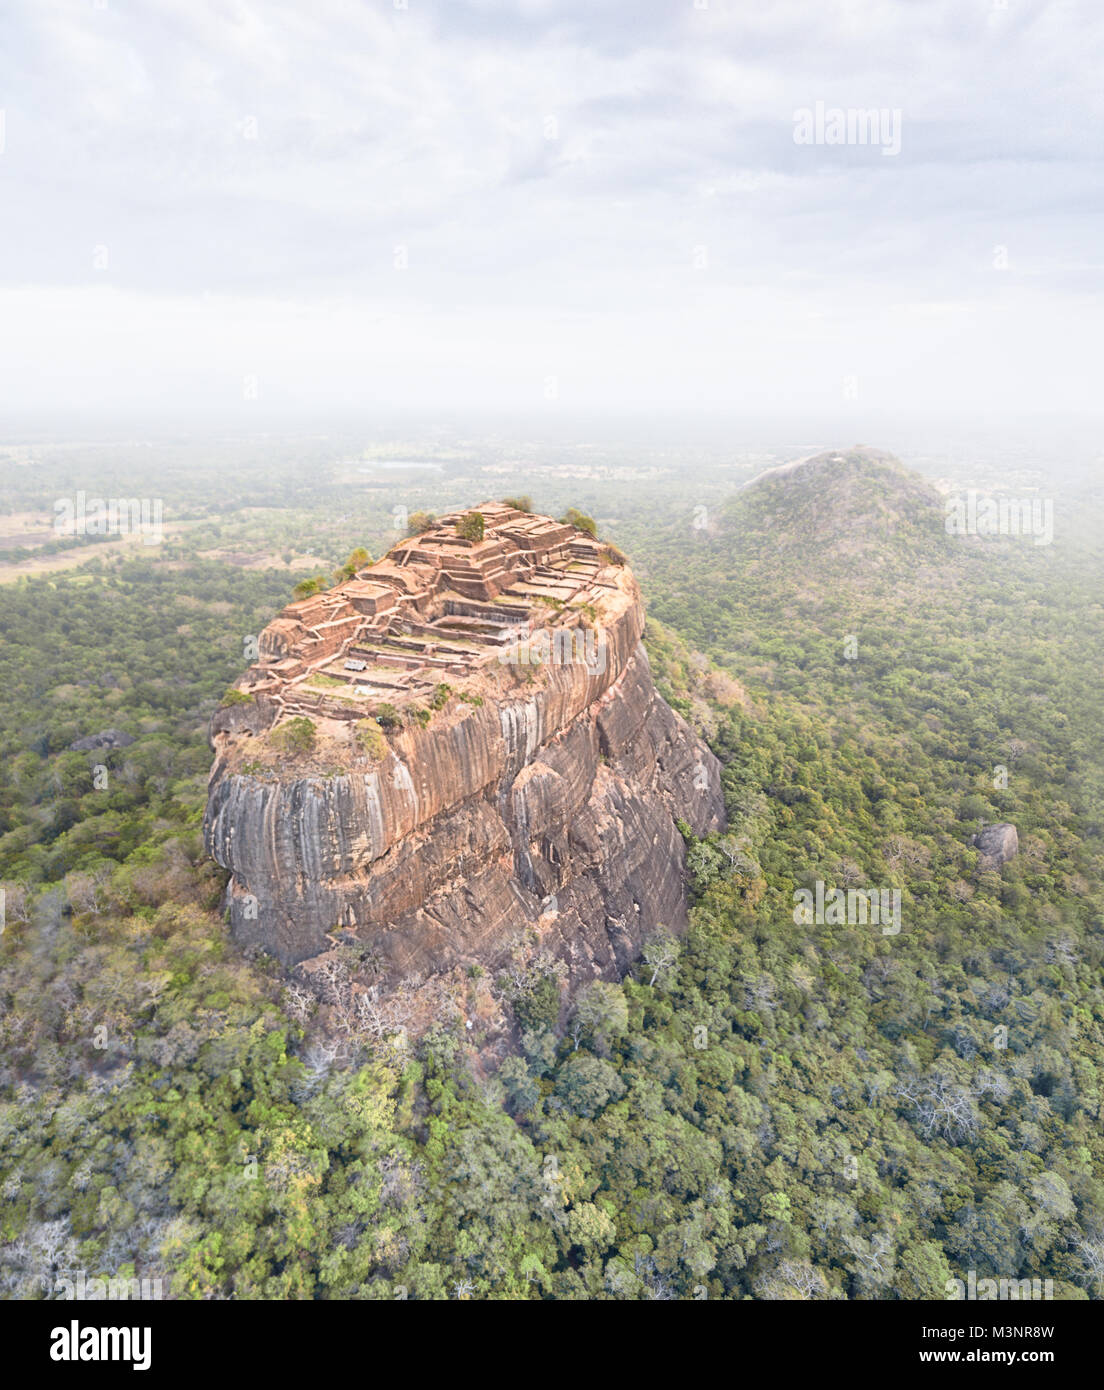 Sigiriya rock lion rock Sri Lanka drone picture ancient city citadel town fortress - Stock Image